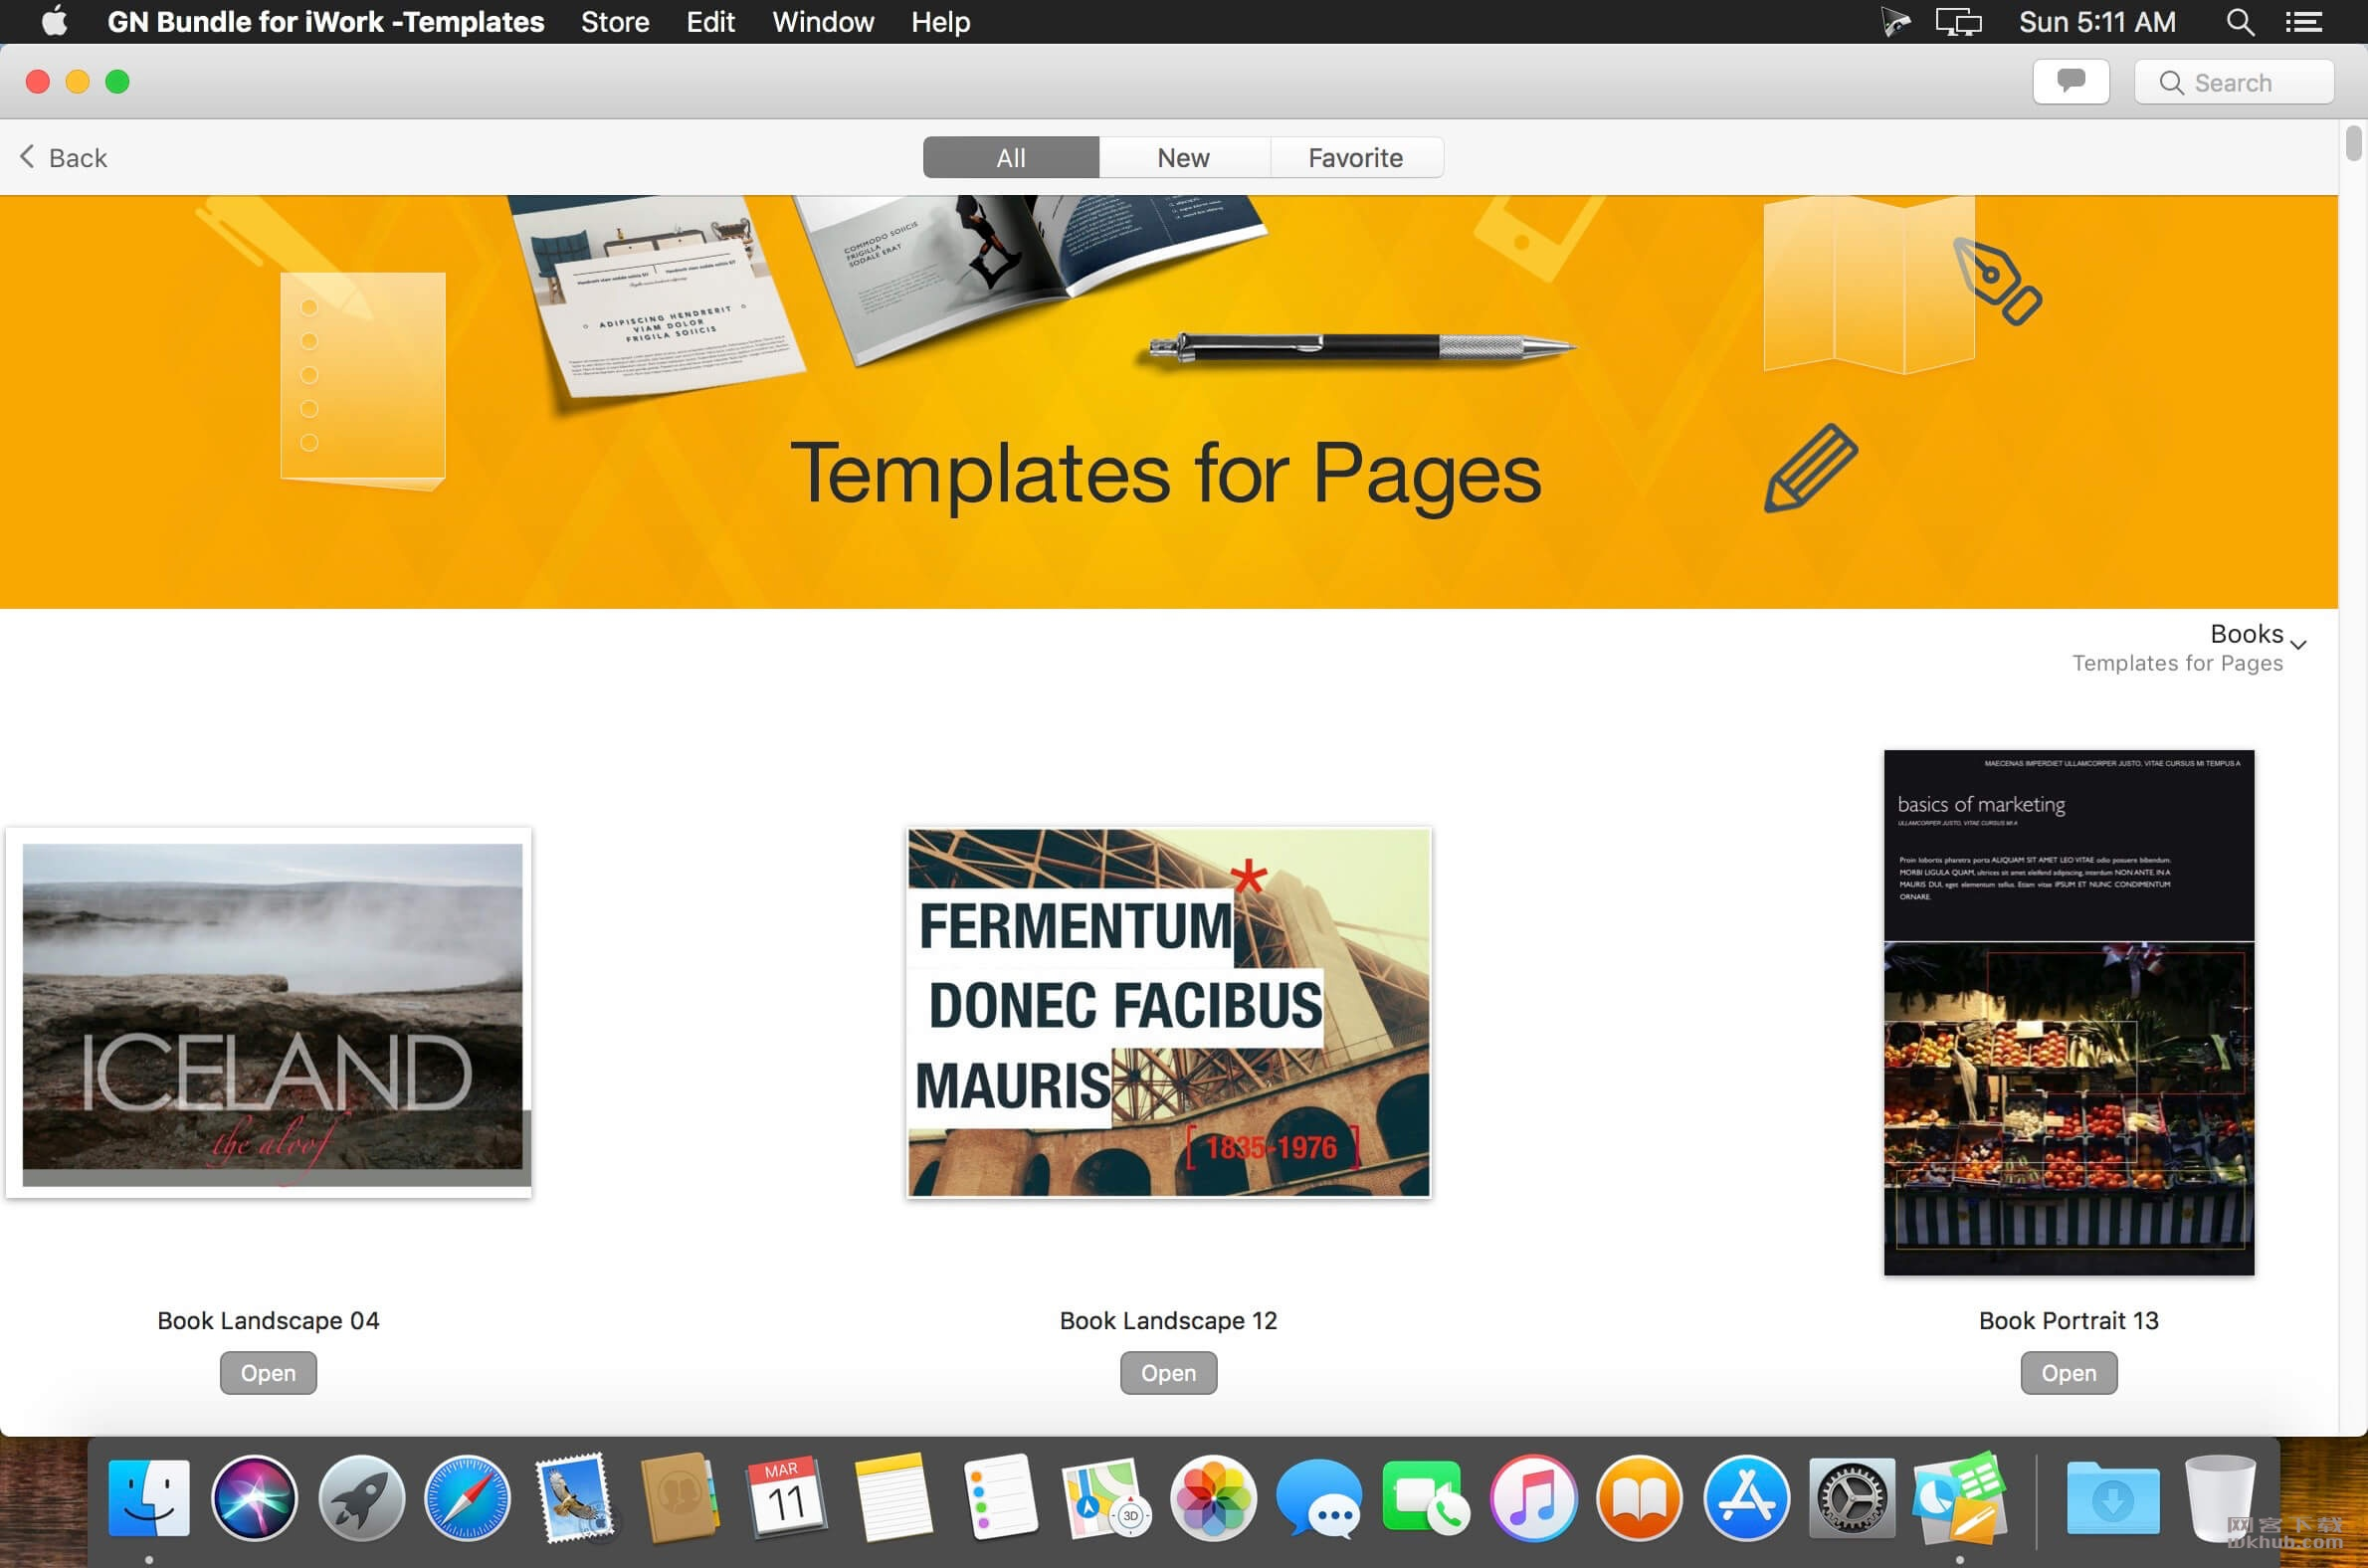 GN Bundle for iWork - Templates 6.0.8 iWork模板合集